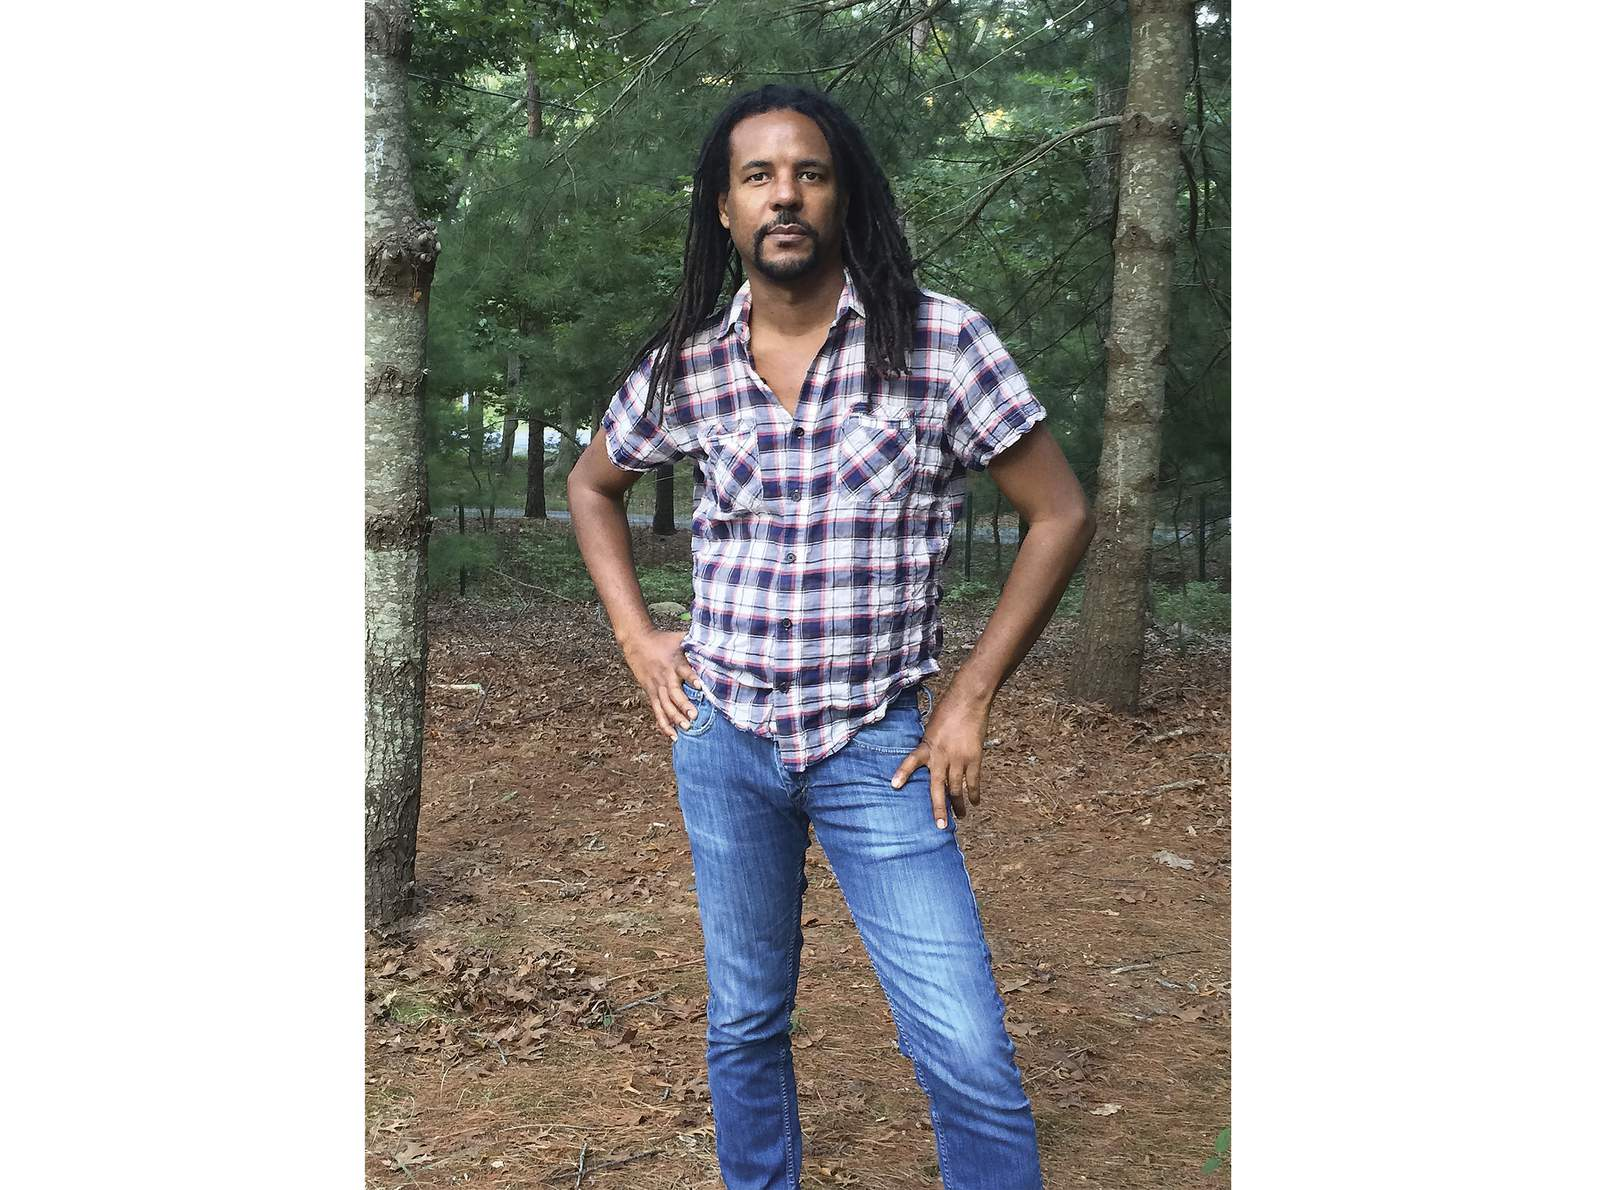 Library of Congress to honor author Colson Whitehead 1